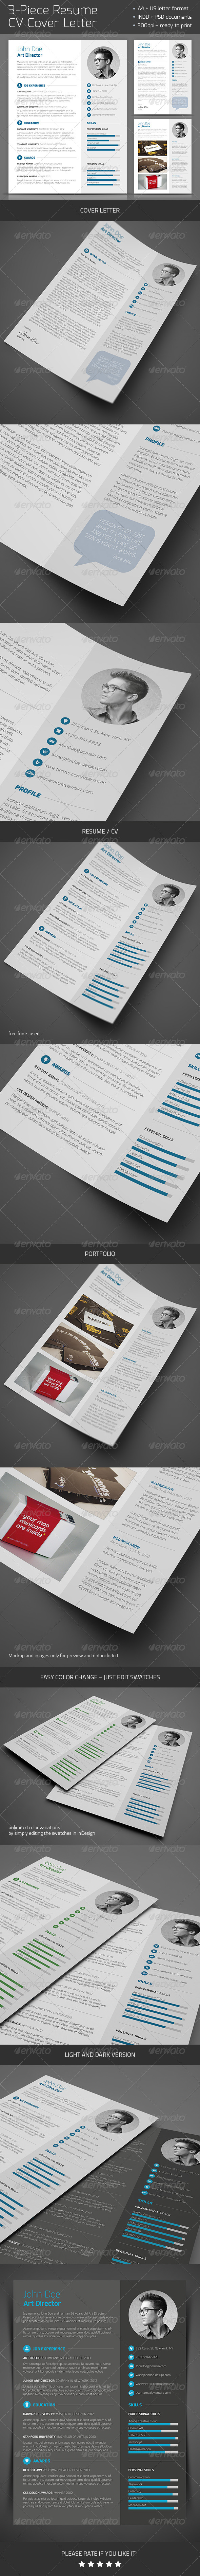 GraphicRiver 3-Piece Resume CV Cover Letter 5861666